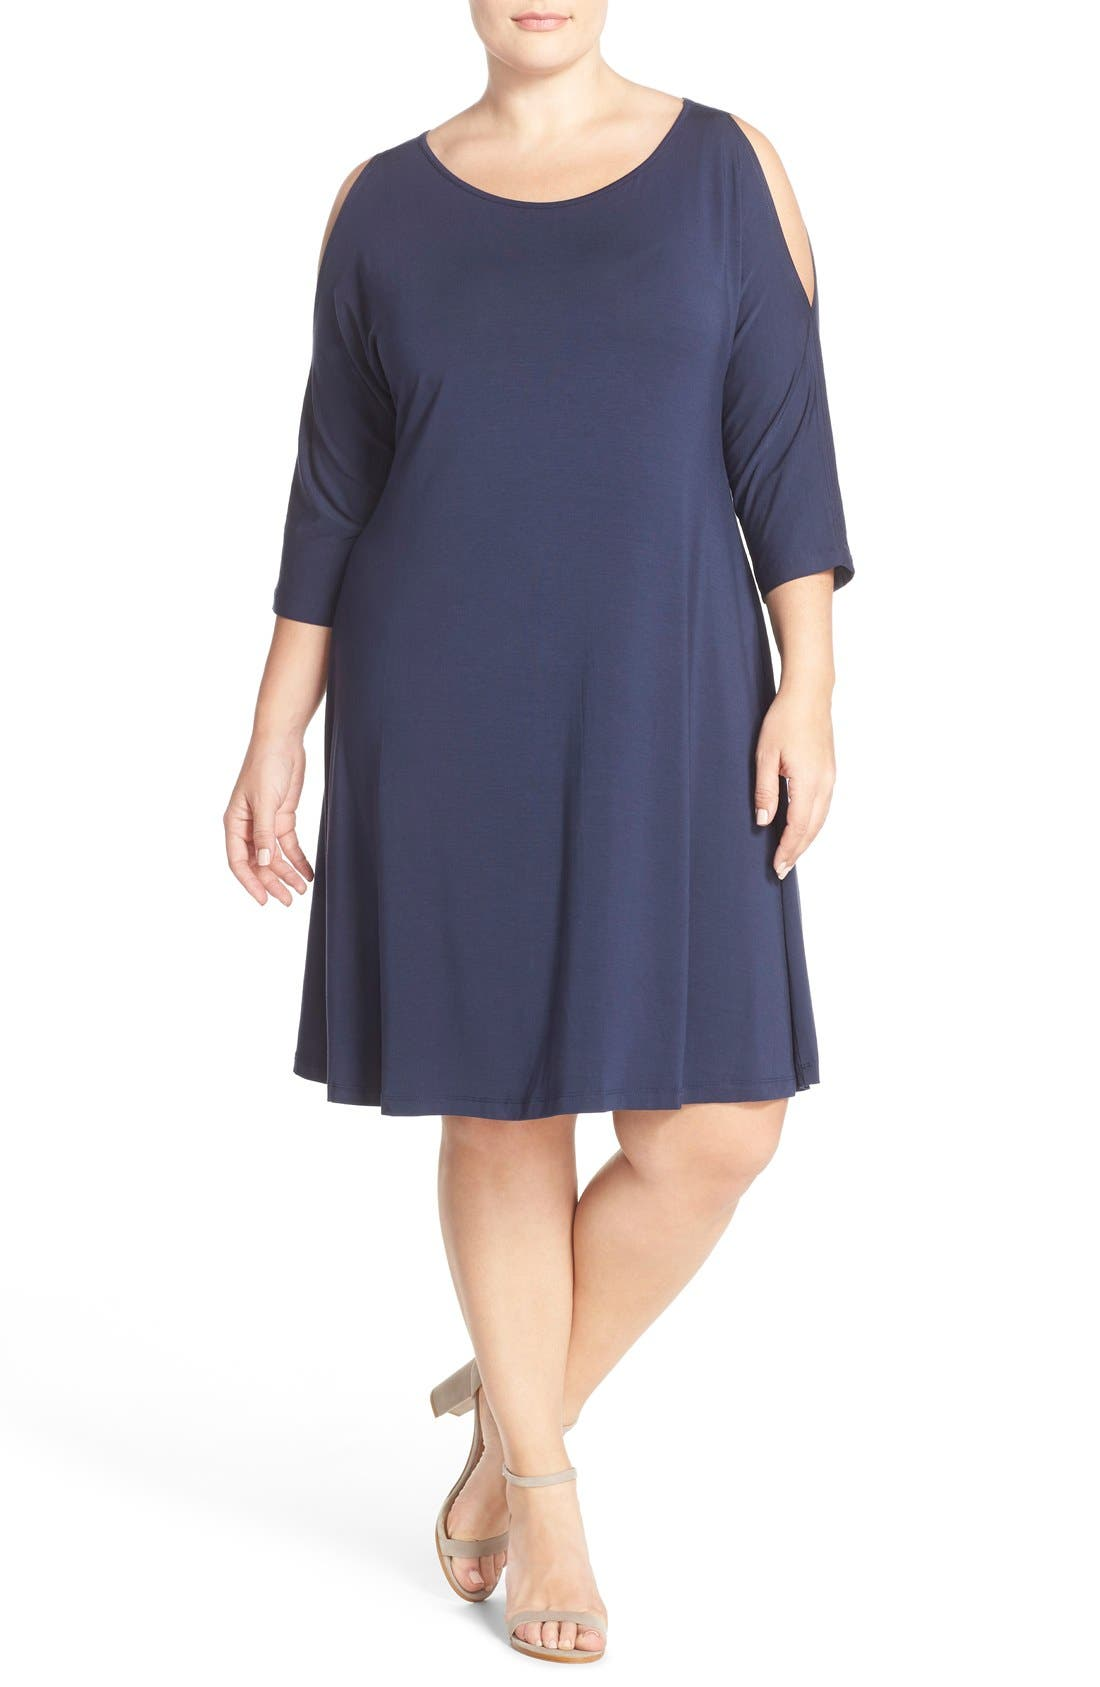 Tart 'Naya' Cold Shoulder A-Line Dress (Plus Size)